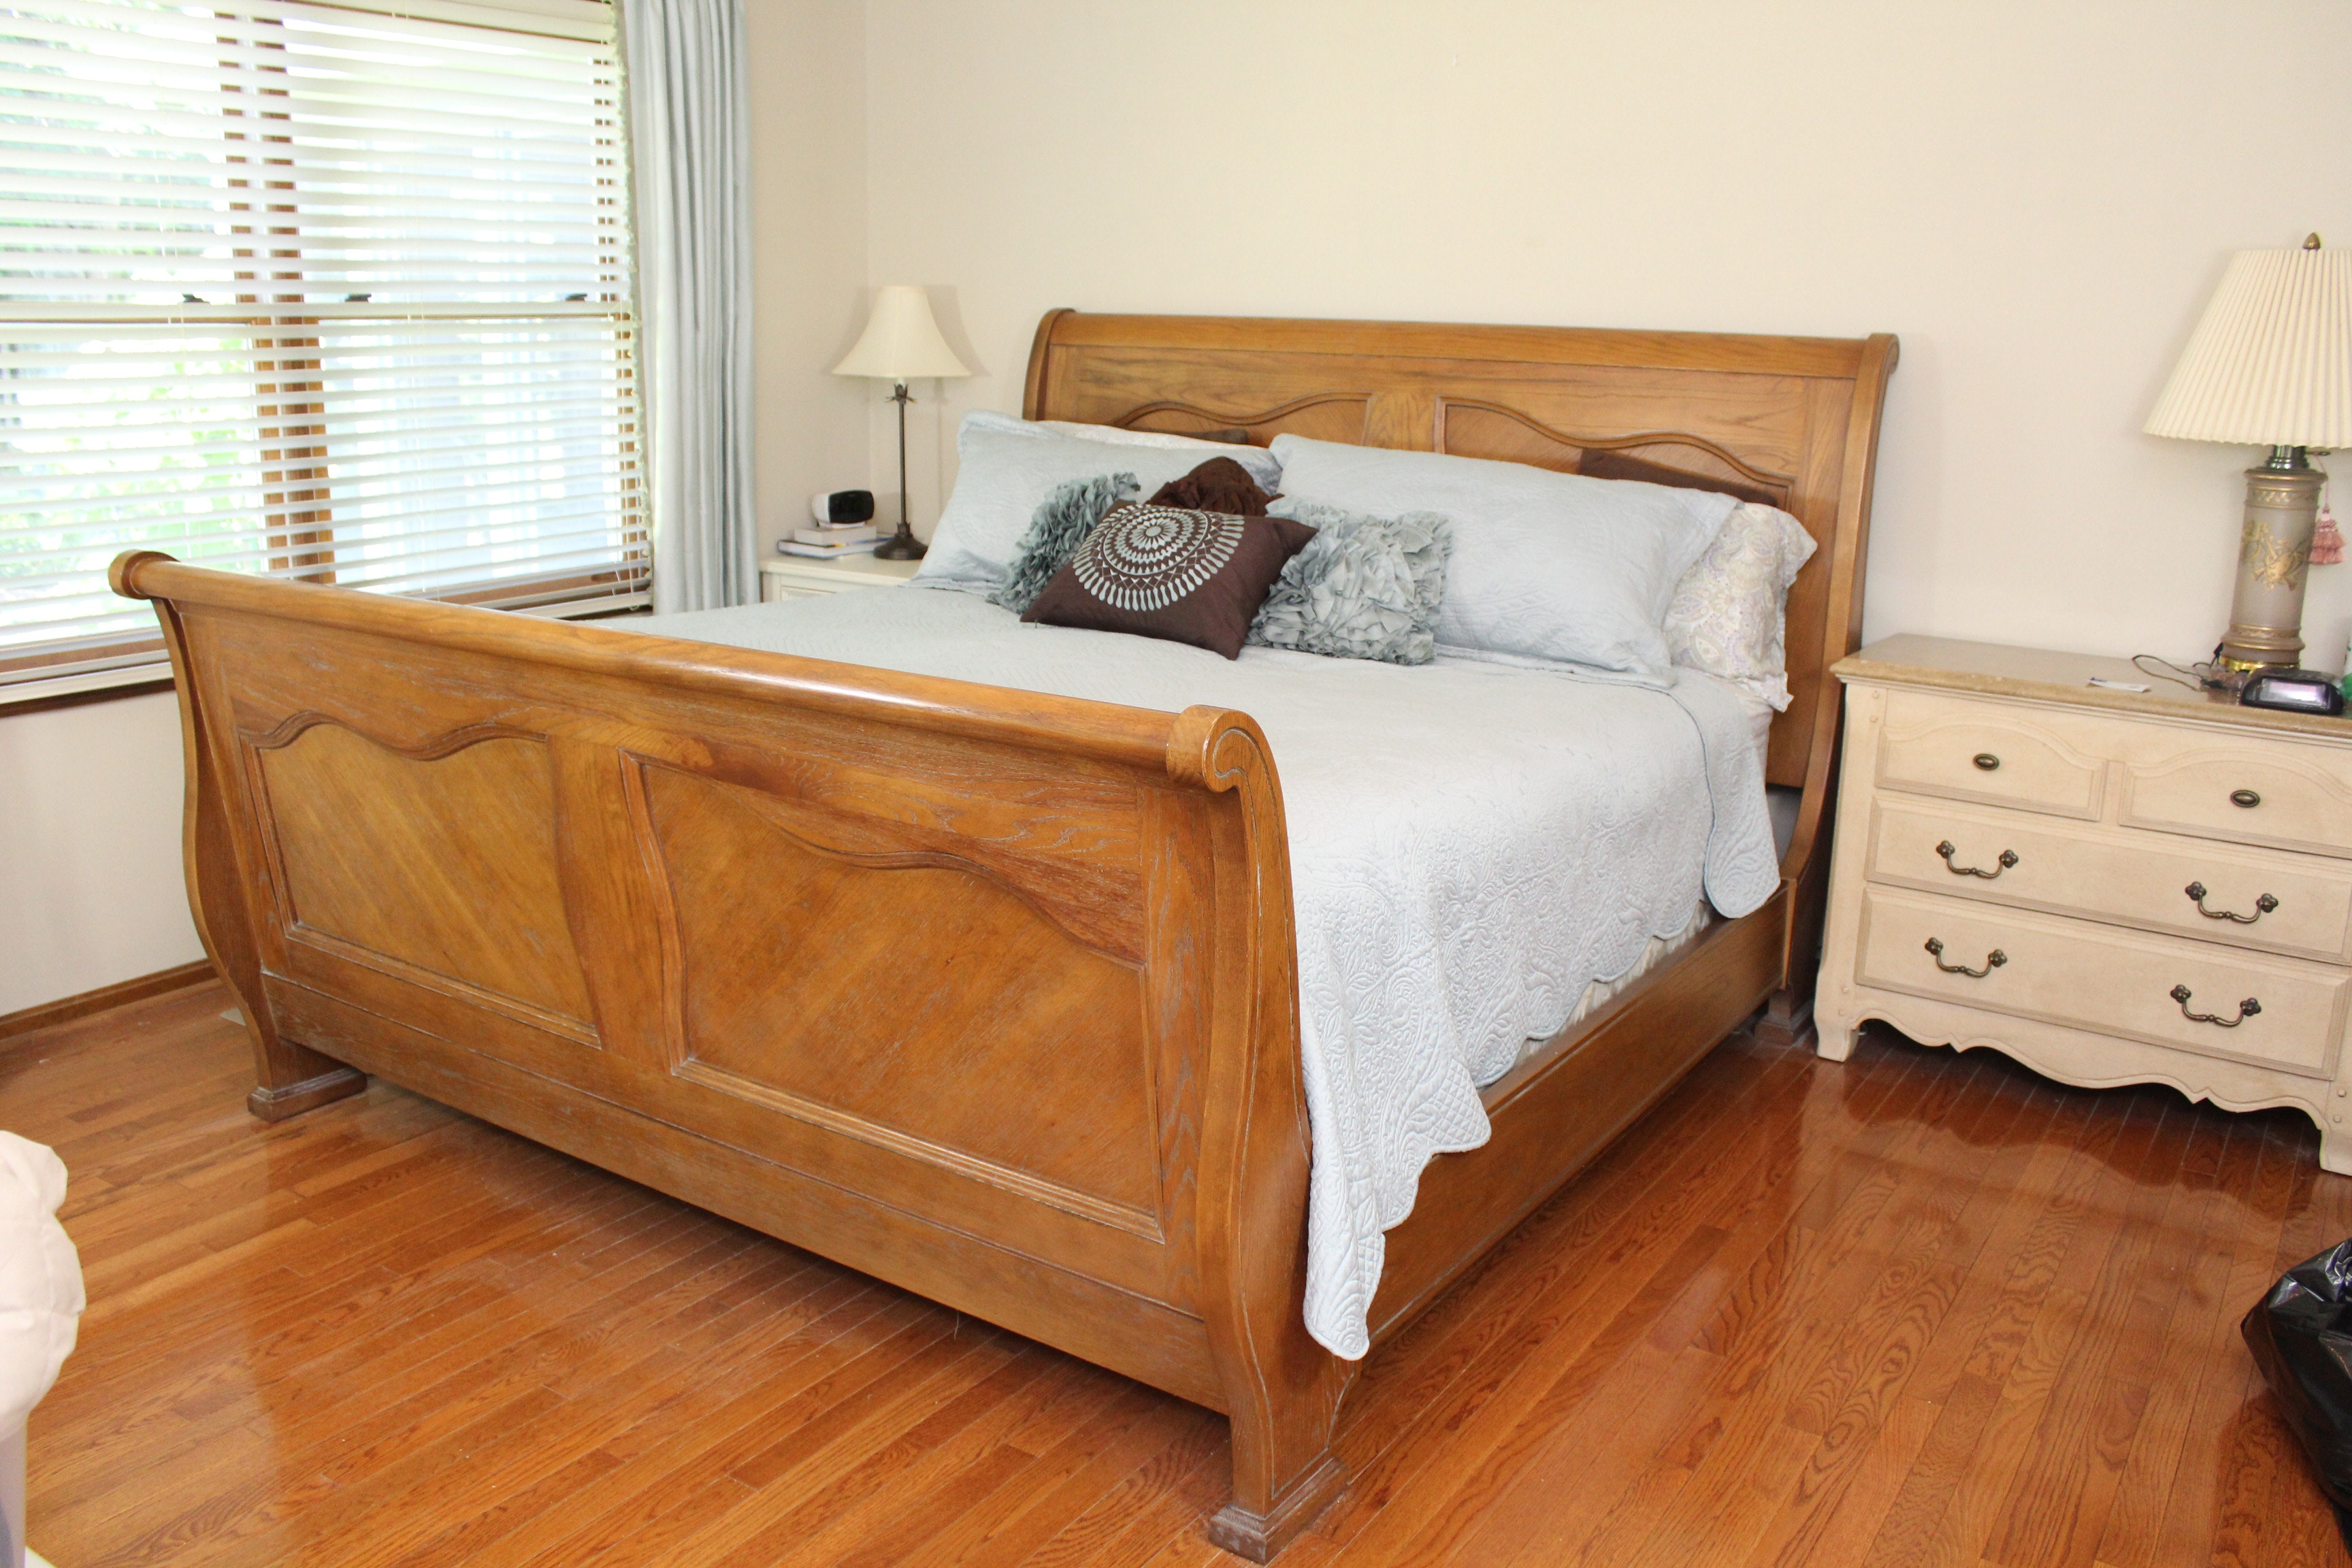 kingsize oak sleigh bed frame